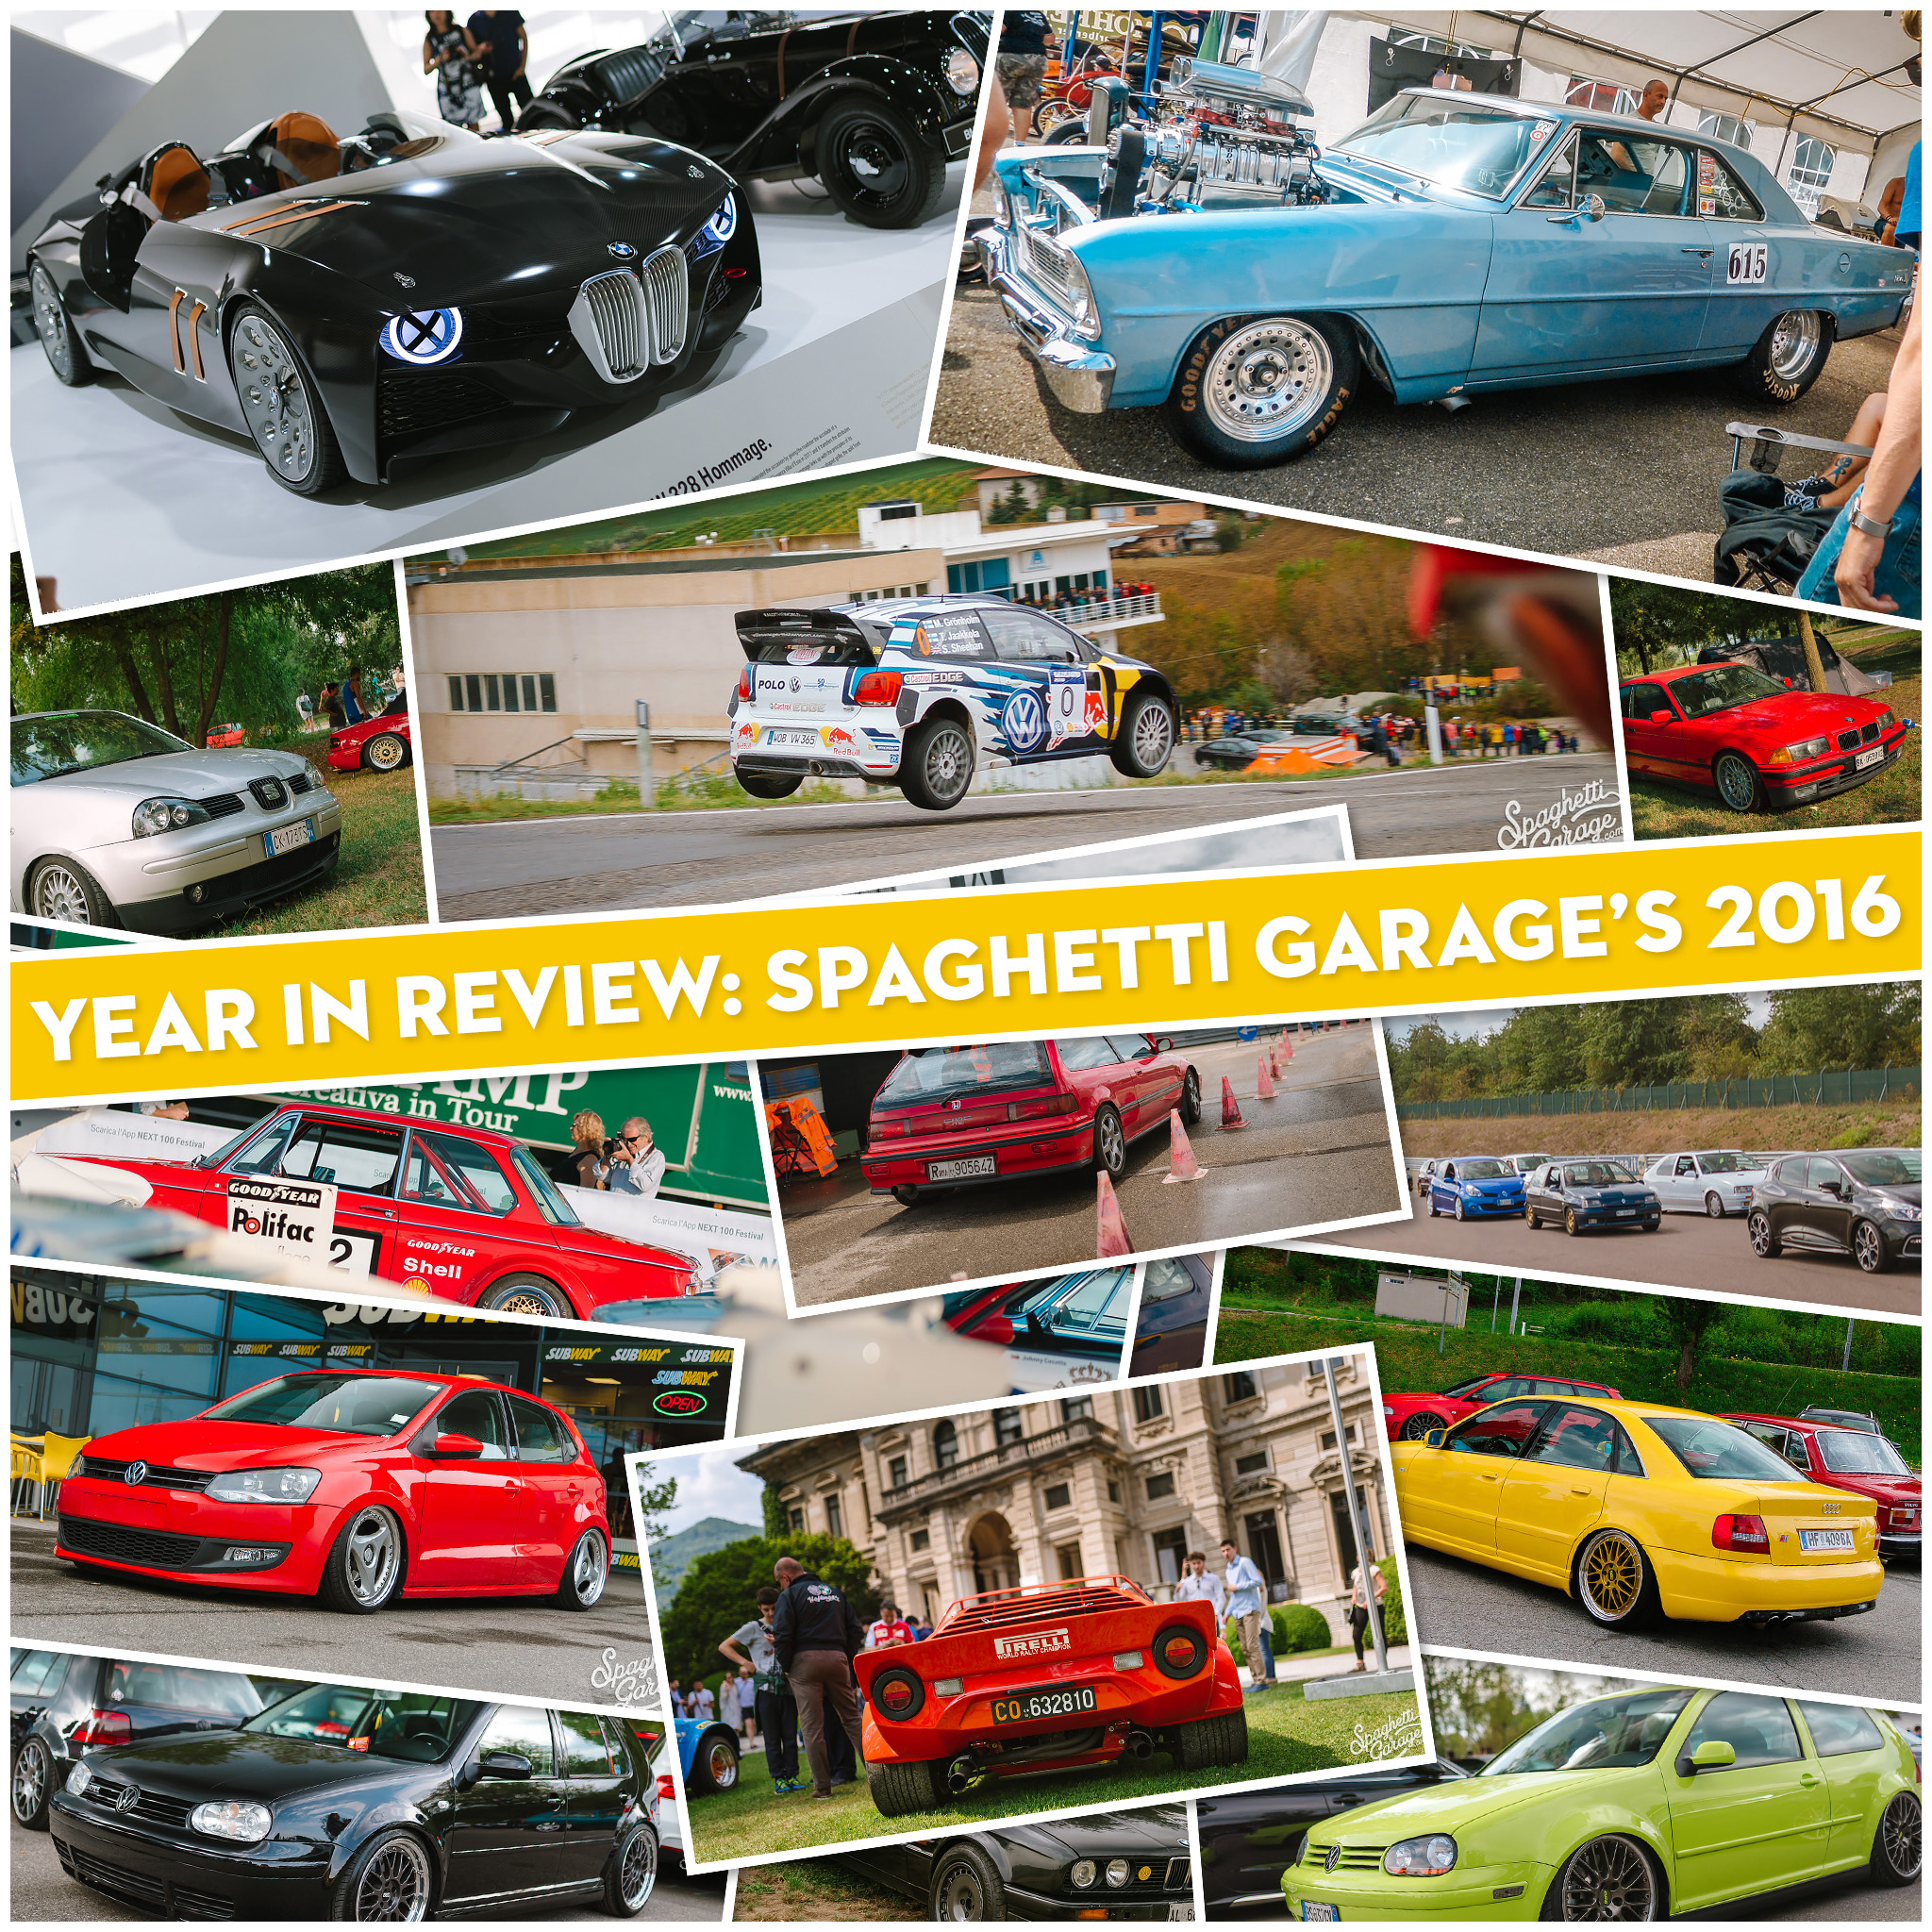 Year in review: Spaghetti Garage's 2016